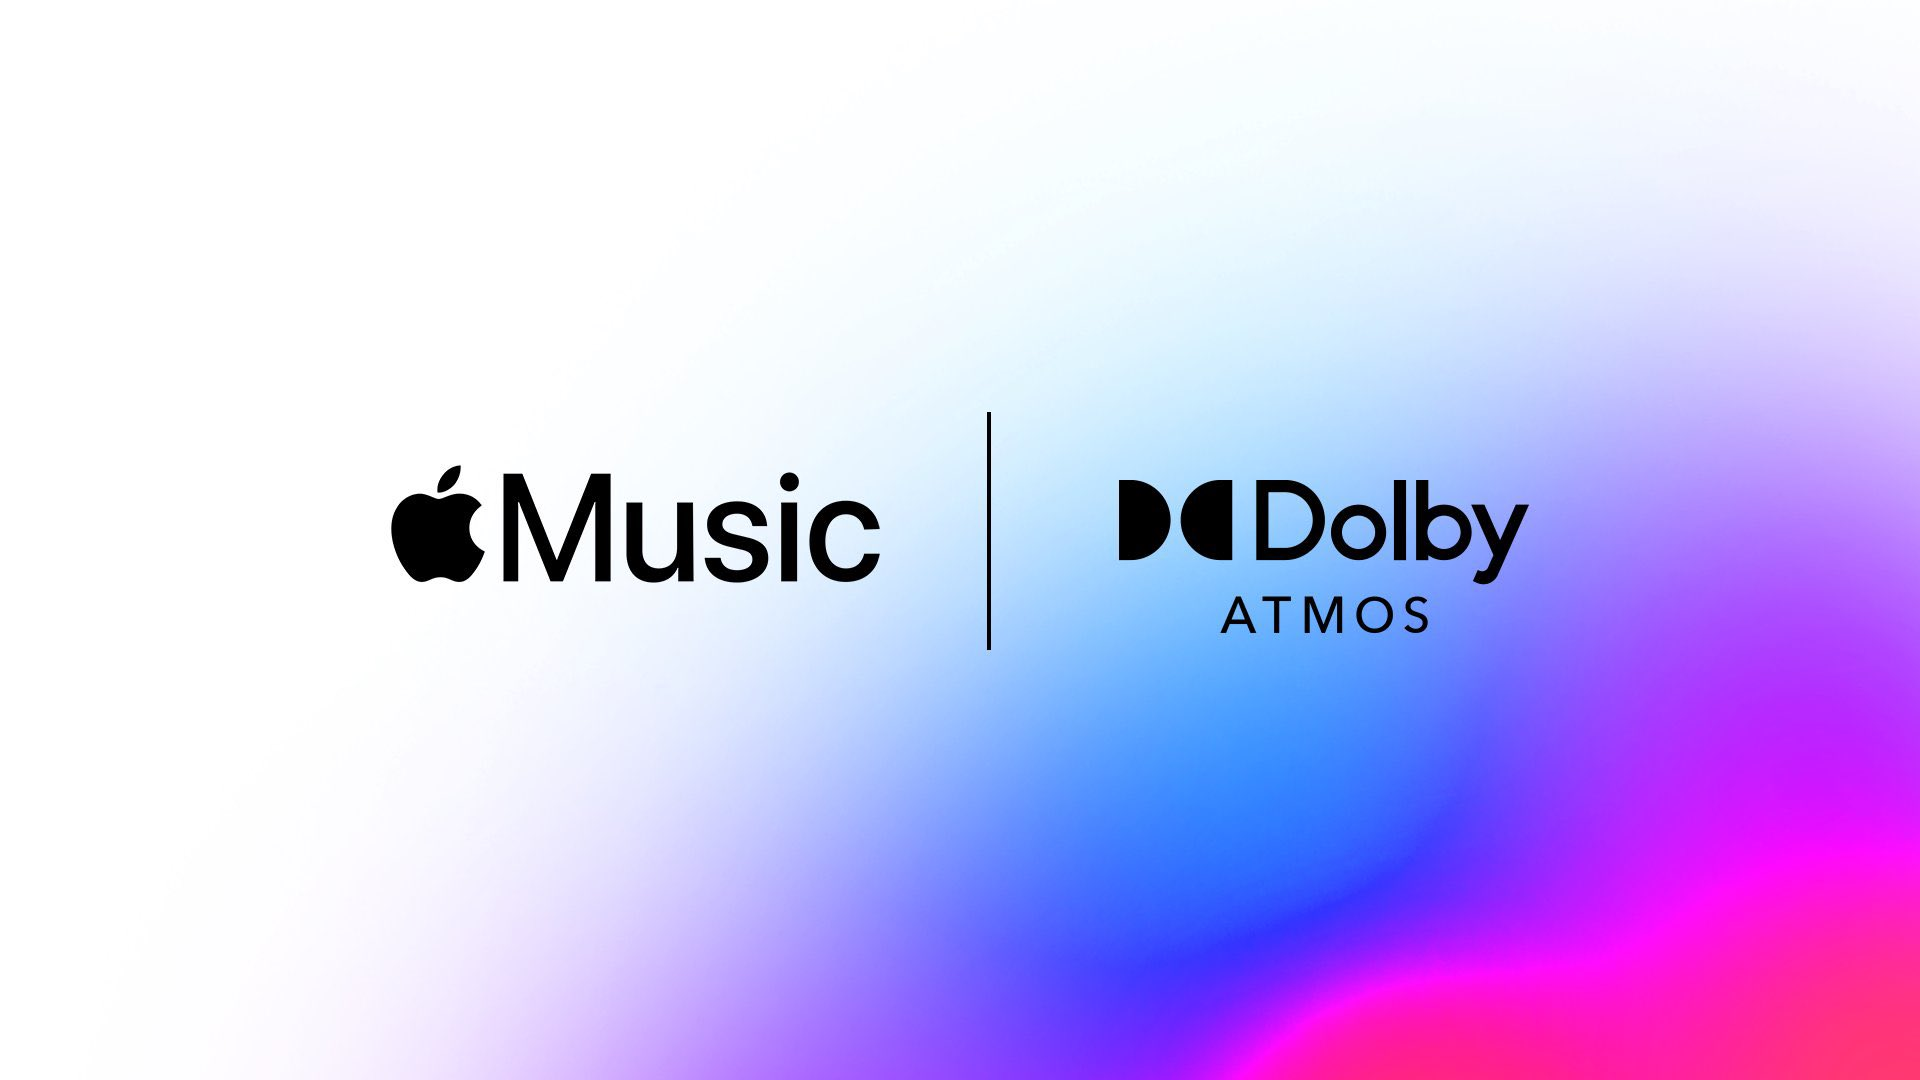 Spatial Audio With The Dolby Atmos Made Lossless Audio A Reality